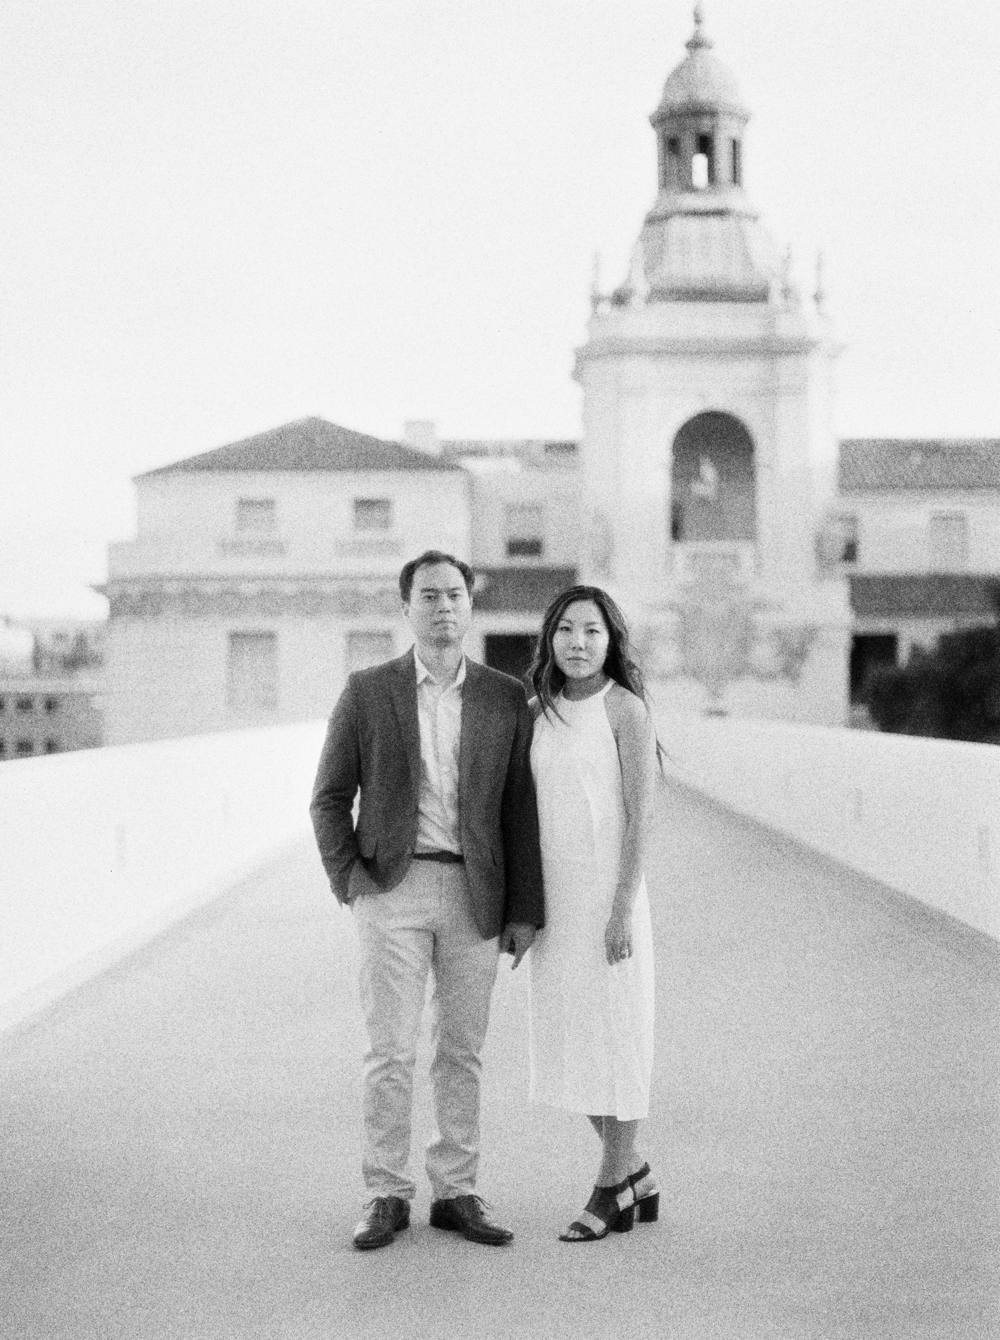 pasadena engagement photography czar goss 25.jpg